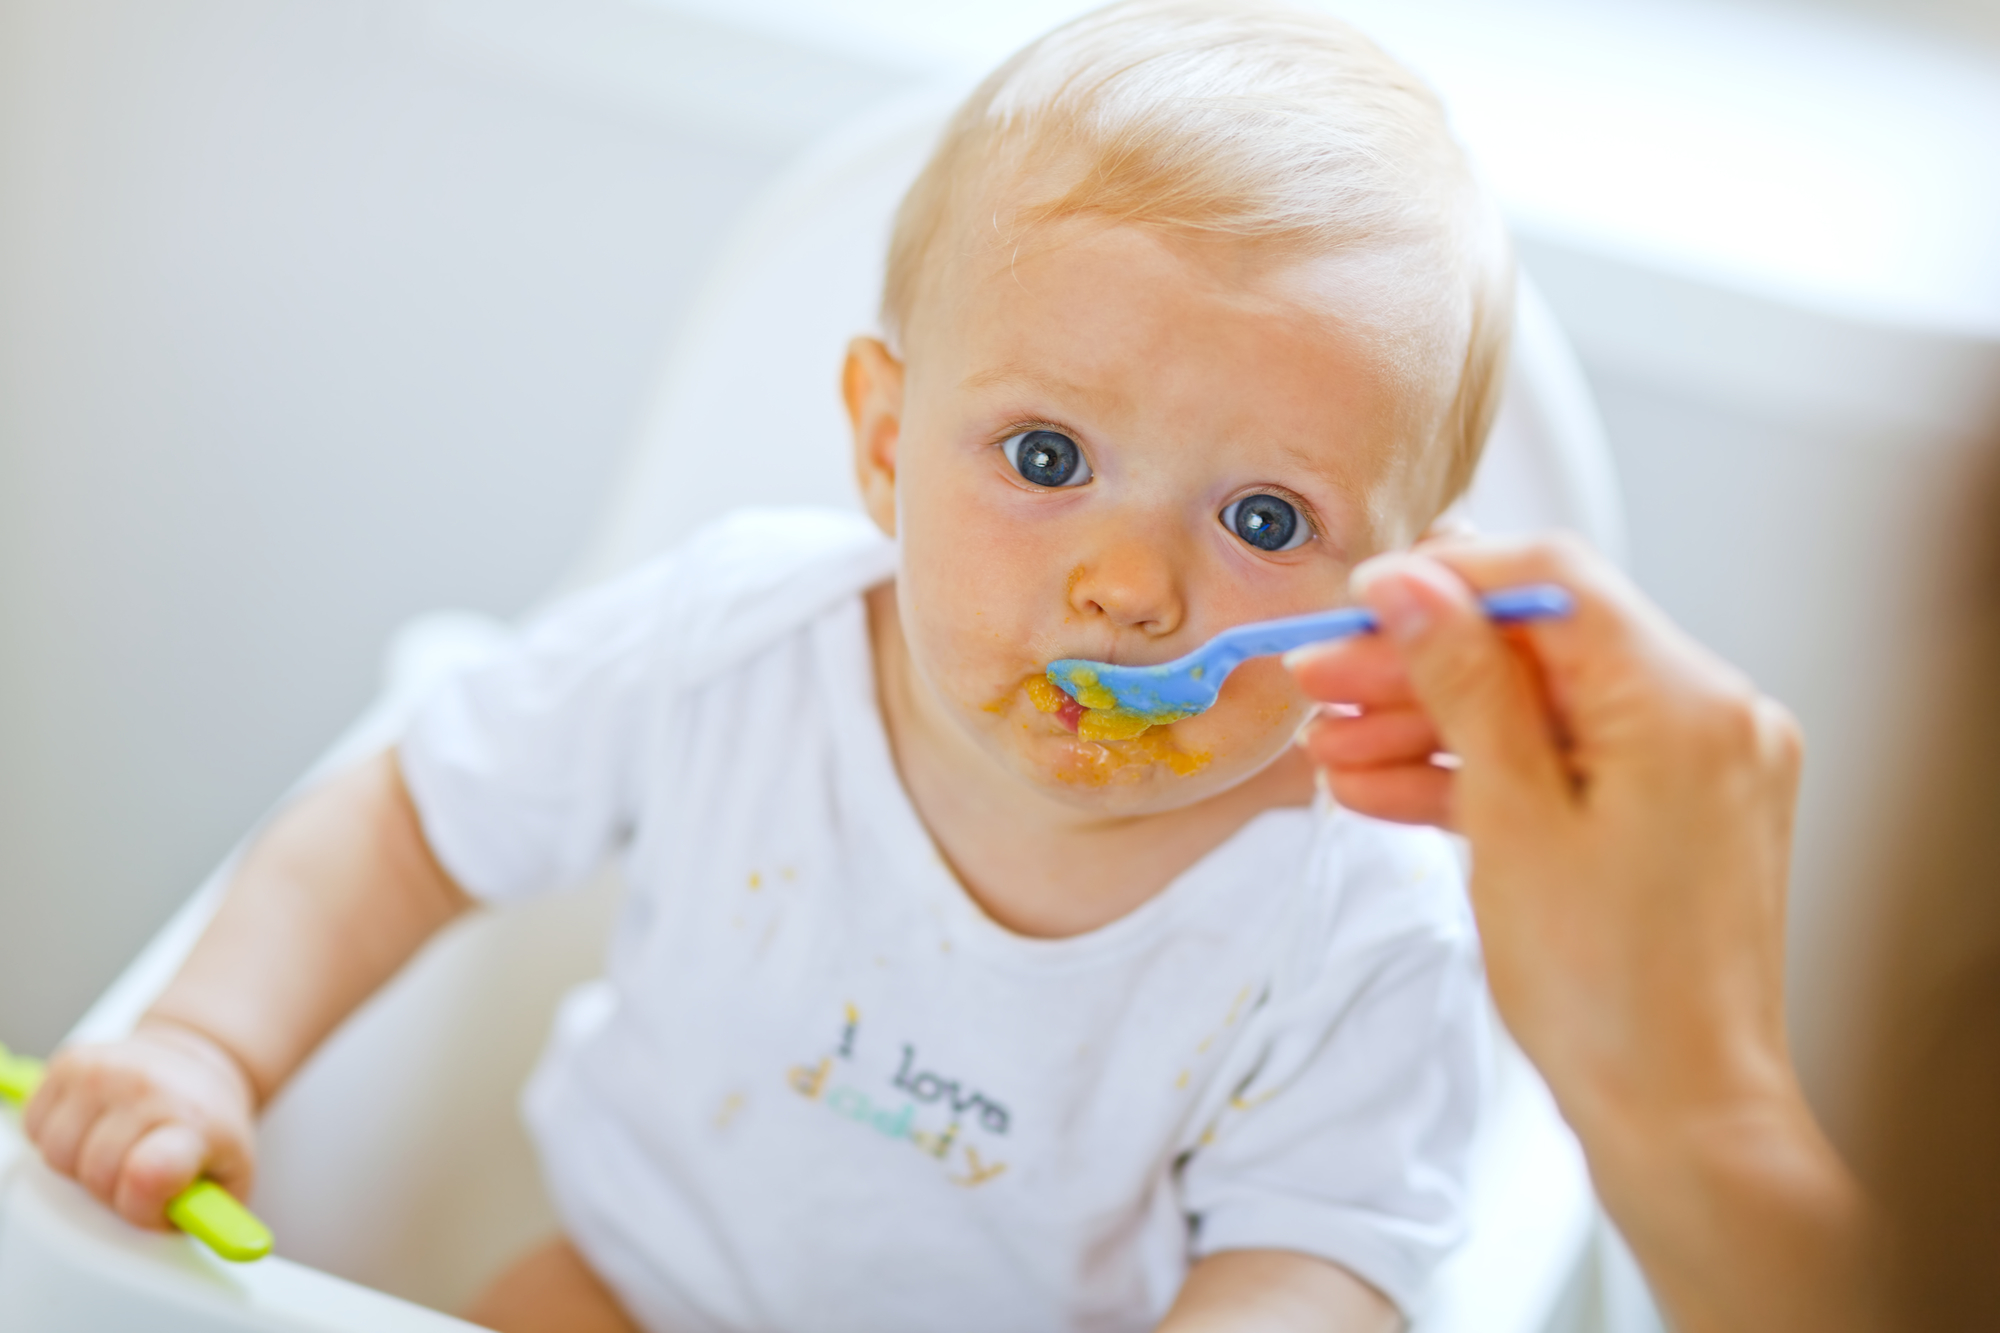 Eat smeared pretty baby eating from spoon